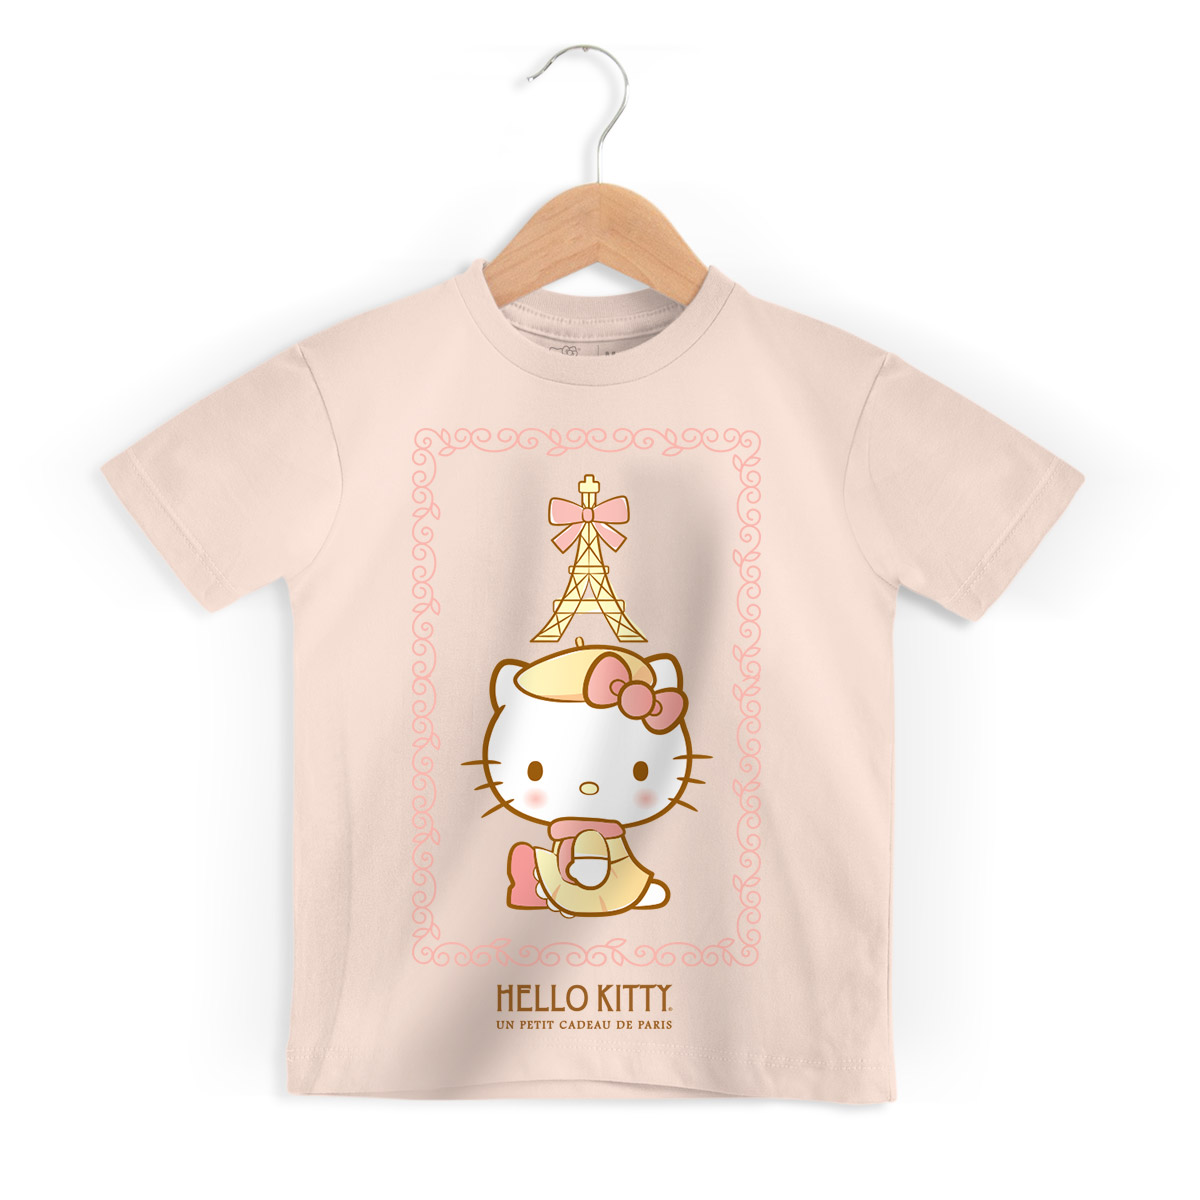 Camiseta Infantil Hello Kitty Un Petit Cadeau De Paris